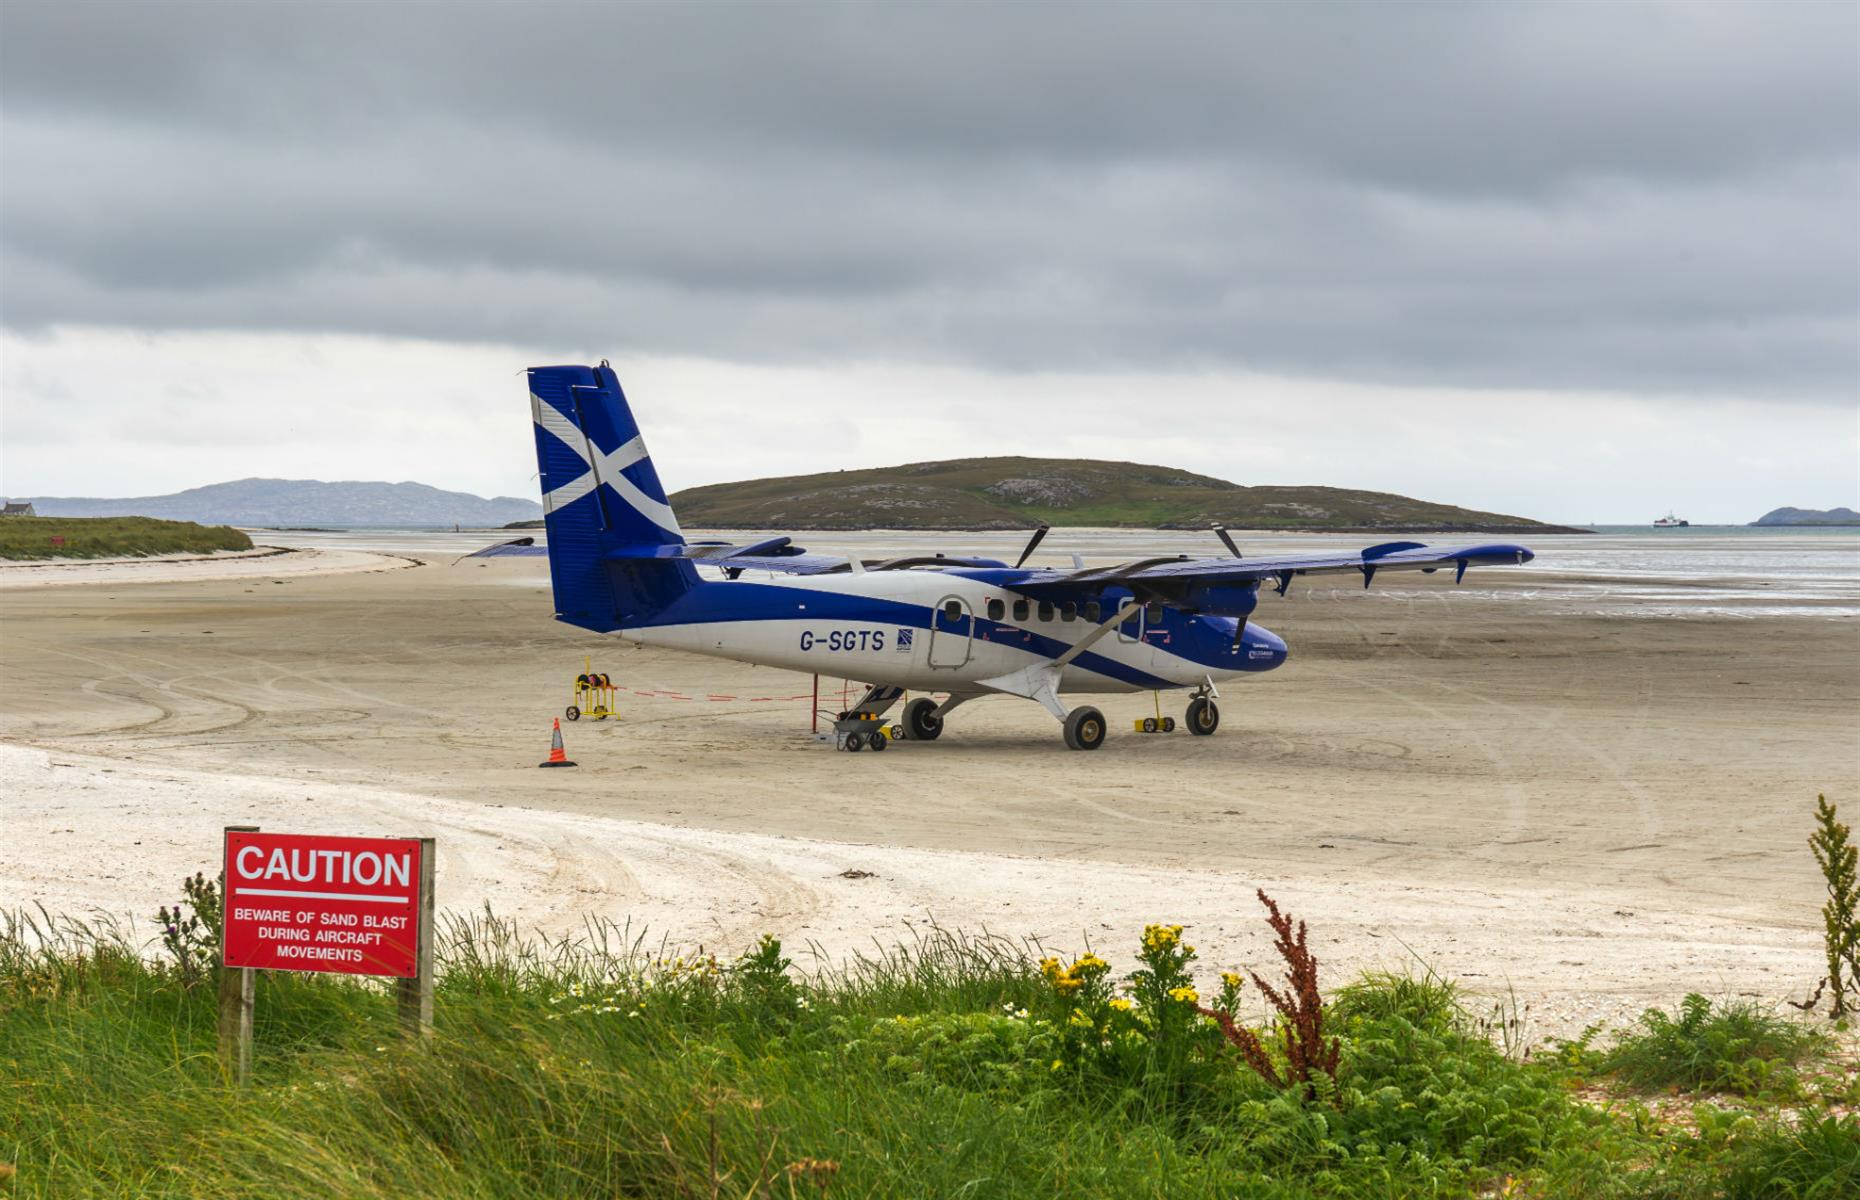 Slide 6 of 31: The airport on the tiny island of Barra in the Outer Hebrides, off the west coast of Scotland, is the only place in the world where scheduled flights land on the beach. Here are more of the most remarkable tiny airports in the world